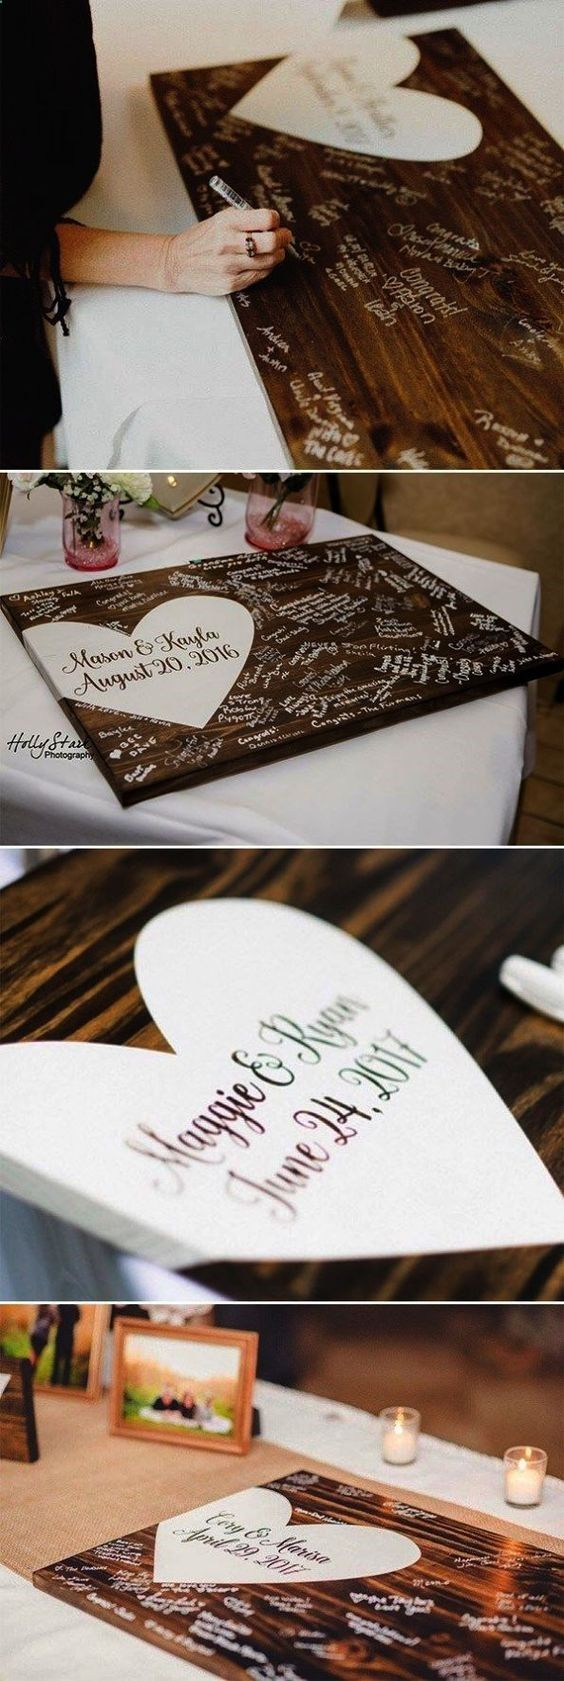 32 Ingenious Philly Wedding Ideas You Ll Wish You Had Thought Of More Small We Wooden Wedding Guest Book Creative Wedding Guest Books Wood Guest Book Wedding